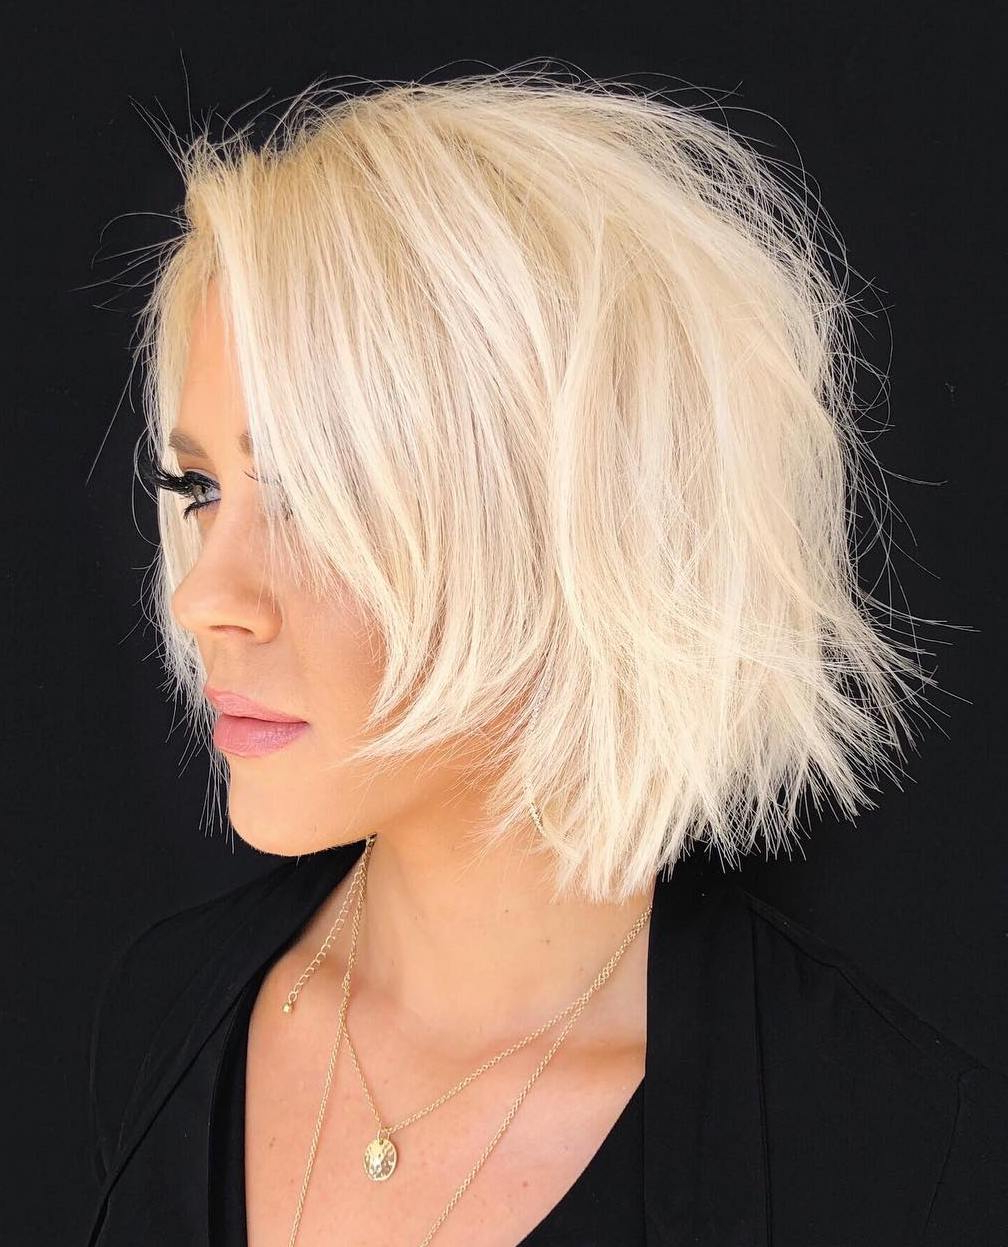 40 Modern Shag Haircuts For Women To Make A Splash Throughout 2017 Bob Shag Haircuts With Flipped Ends (View 6 of 20)